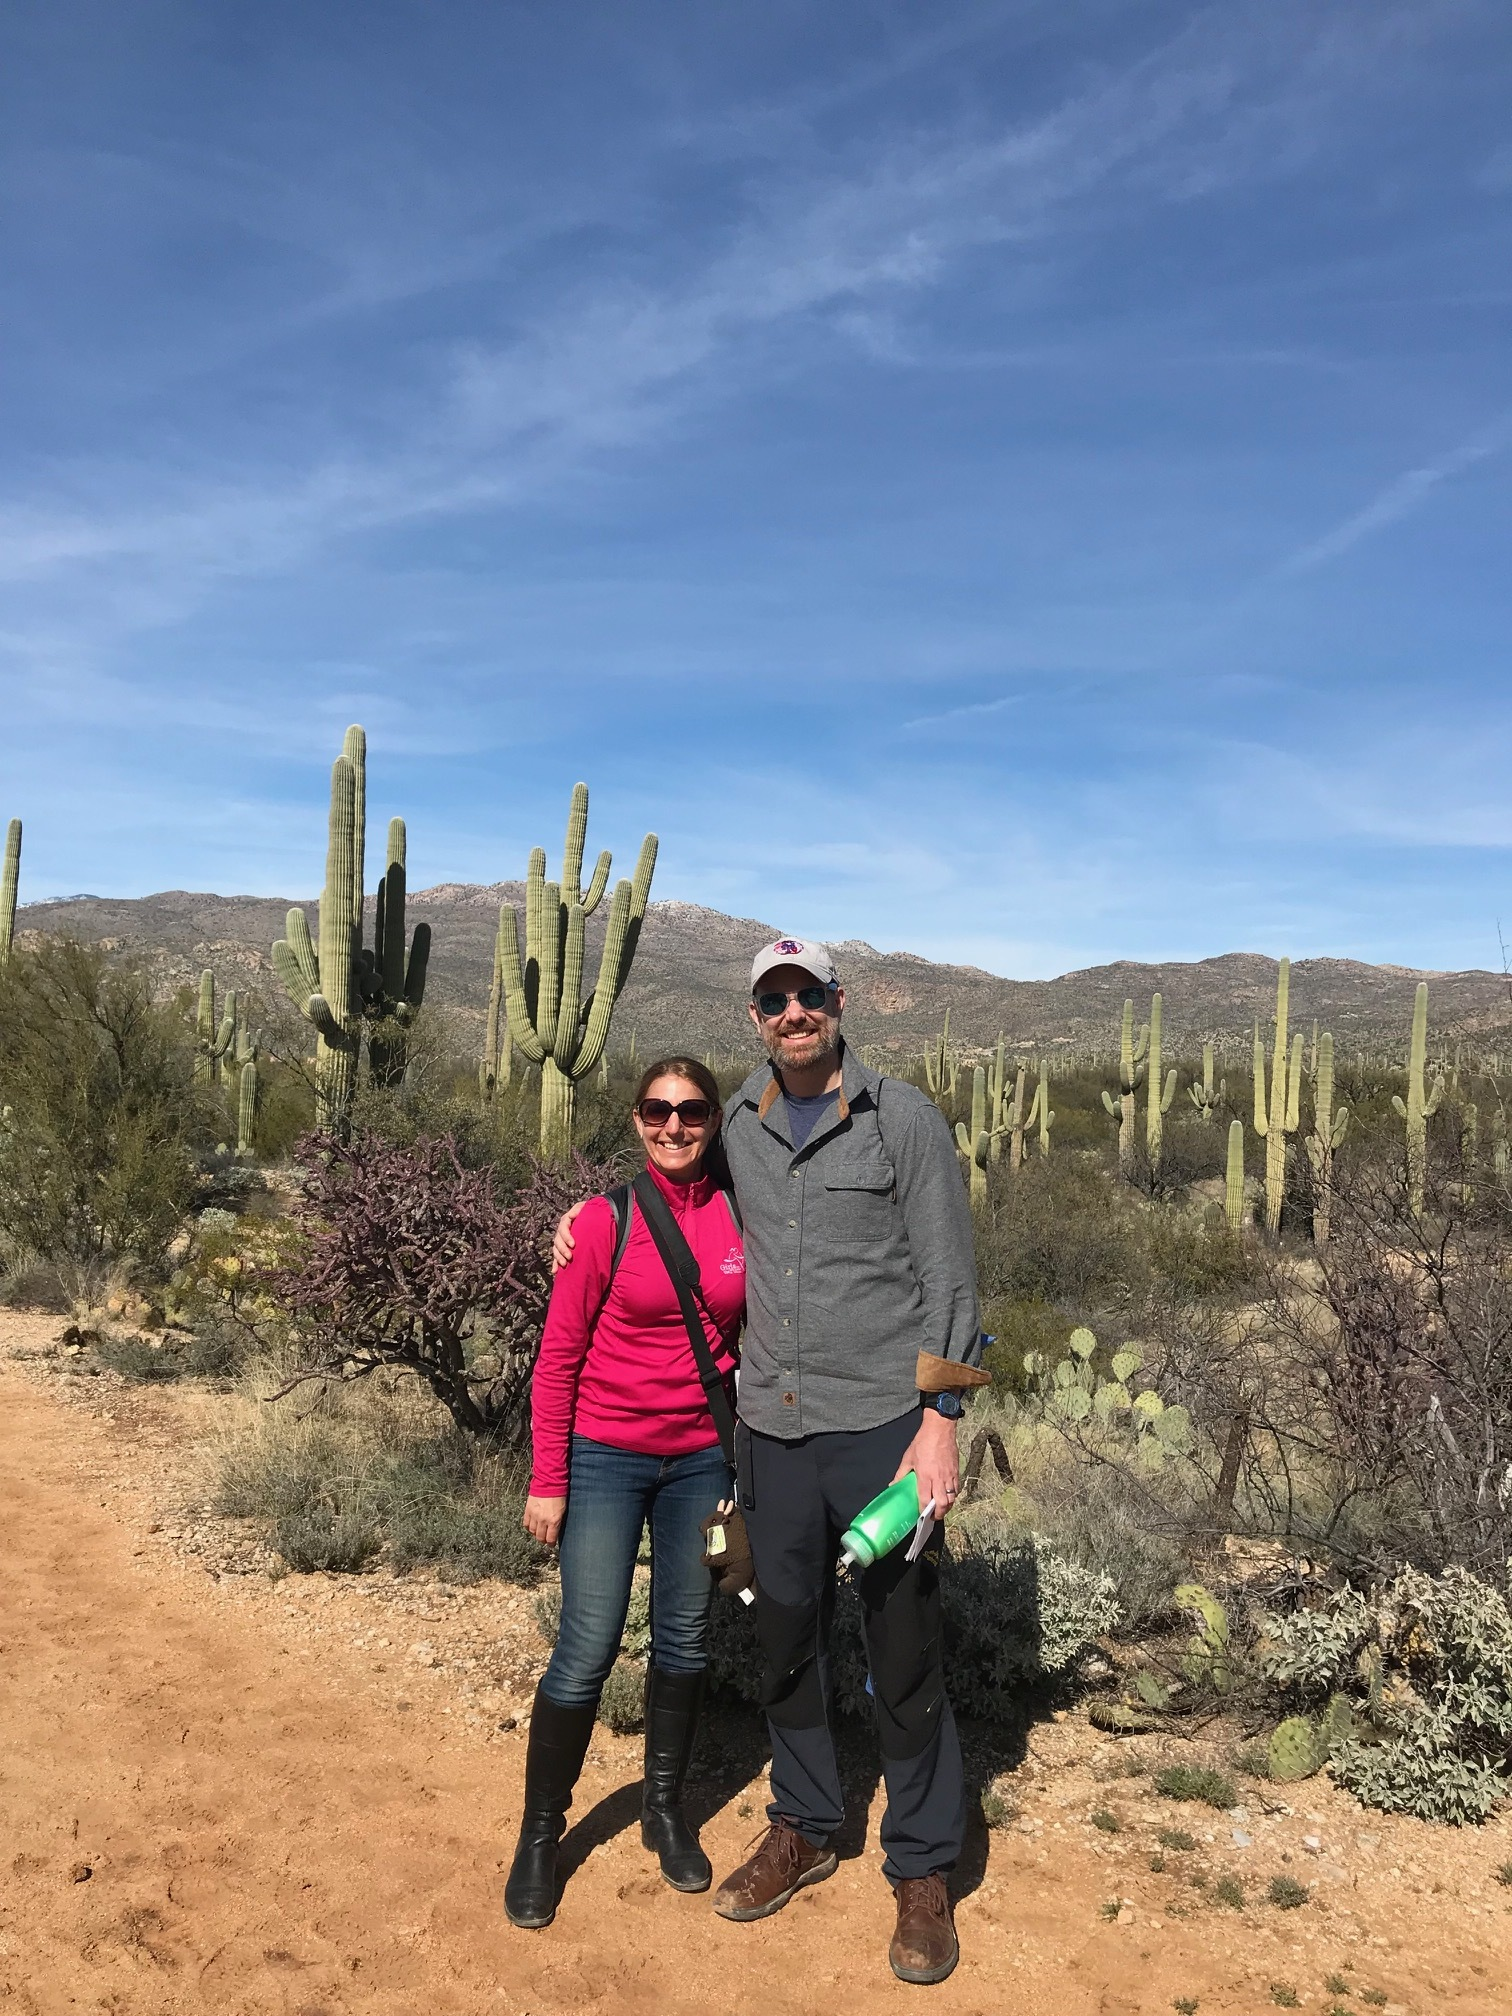 Danielle and her husband and podcast partner, Bryan, at Saguaro National Park in Arizona.